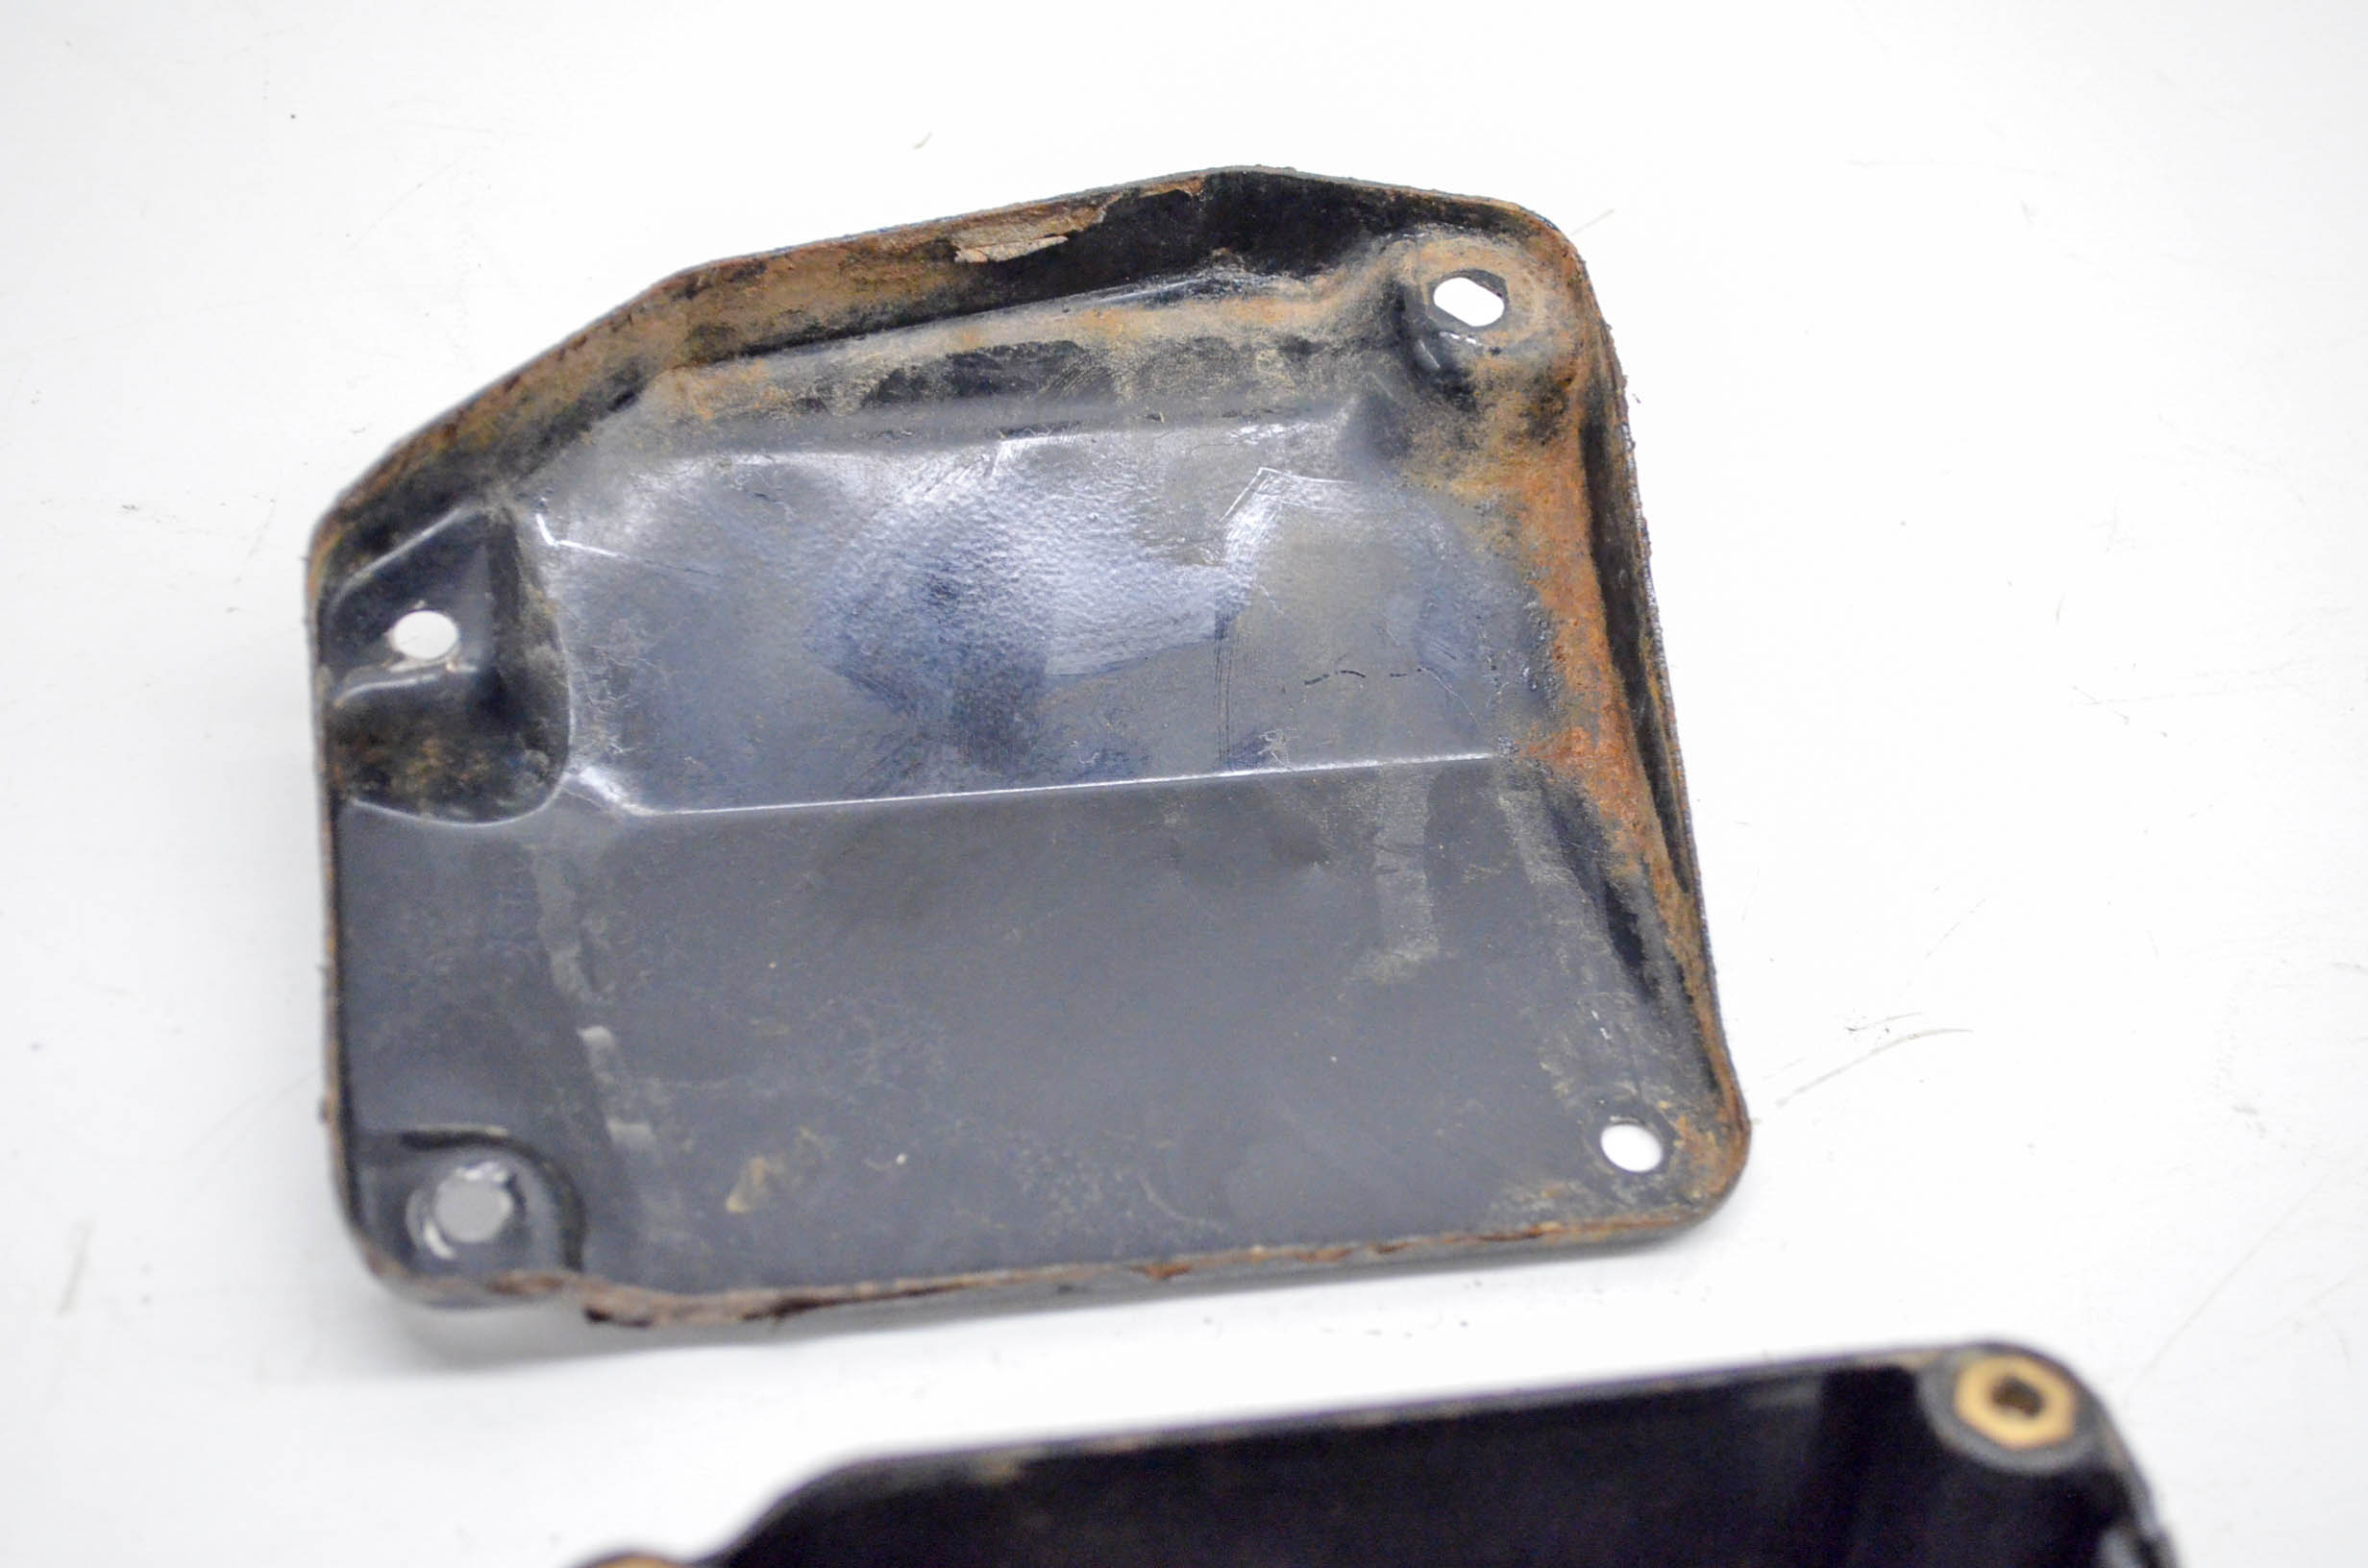 86 honda fourtrax 350 4x4 fuse box eletrical connector case trx350  gallery  image gallery image